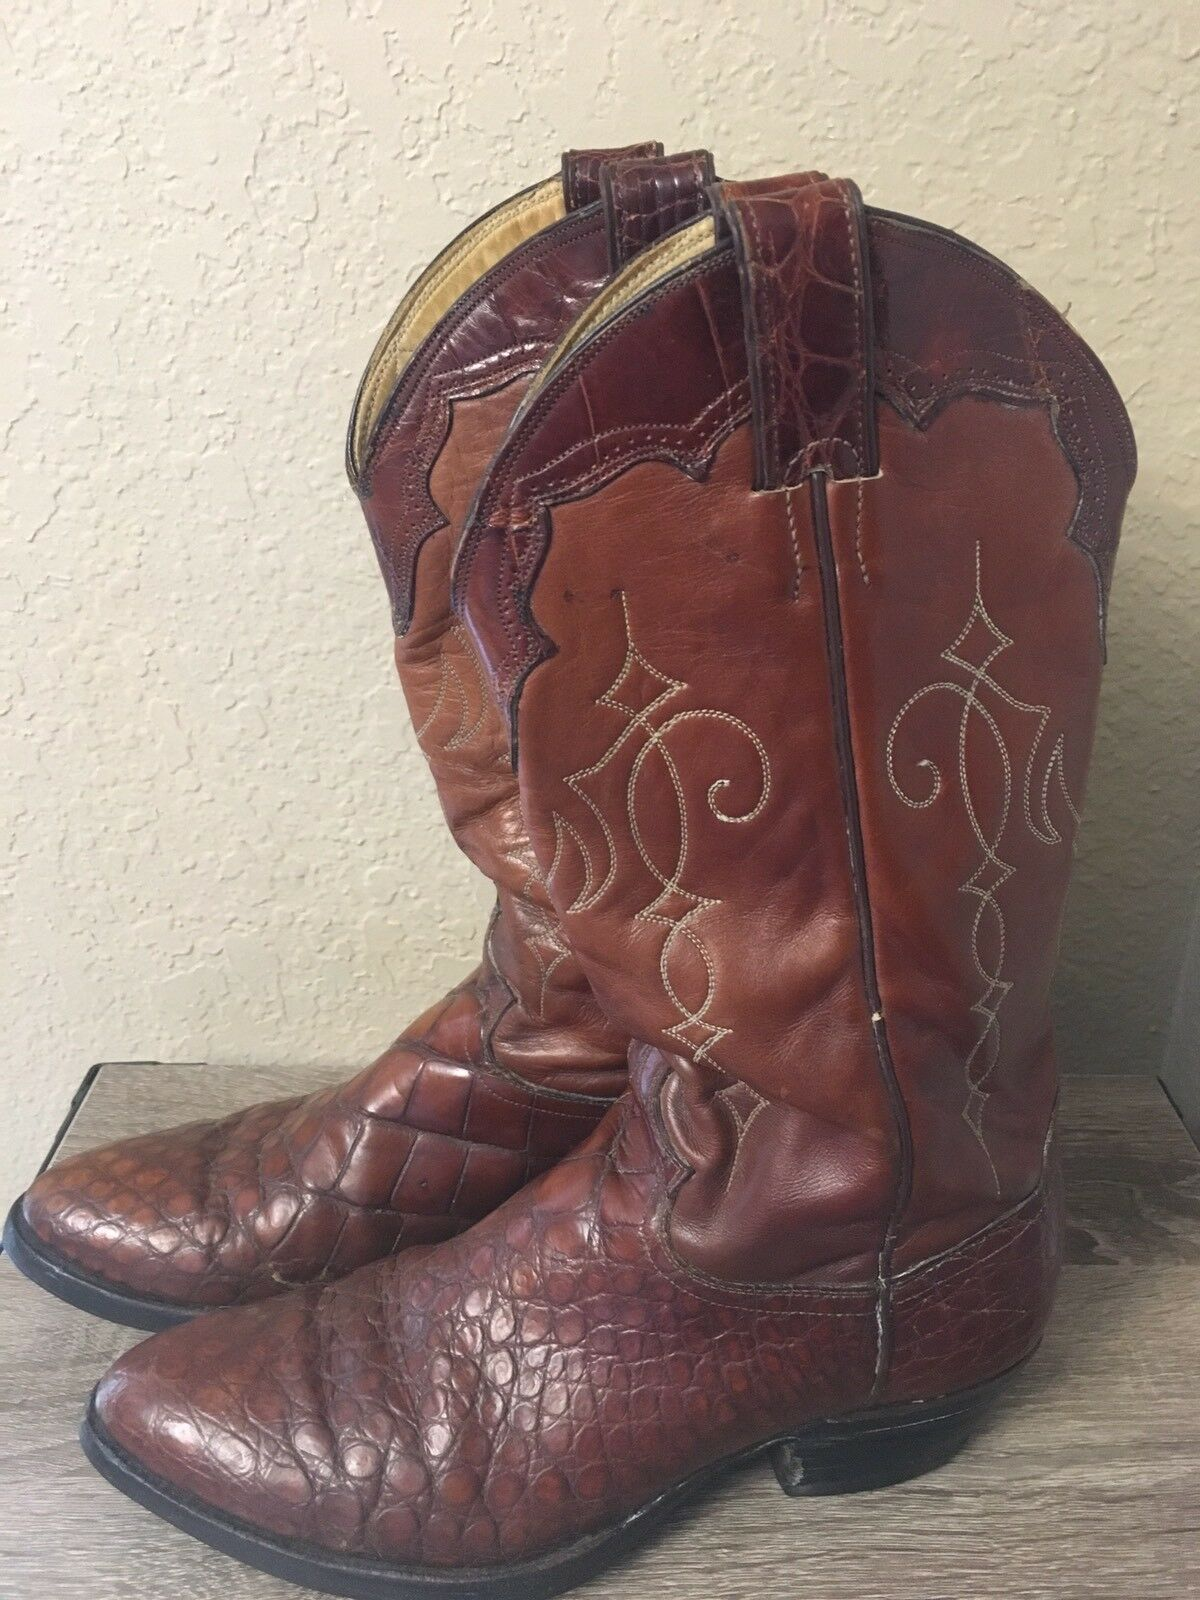 Vintage Justin Genuine Alligator Belly Cowboy Boots 9170 Made In USA Men's 8.5 D